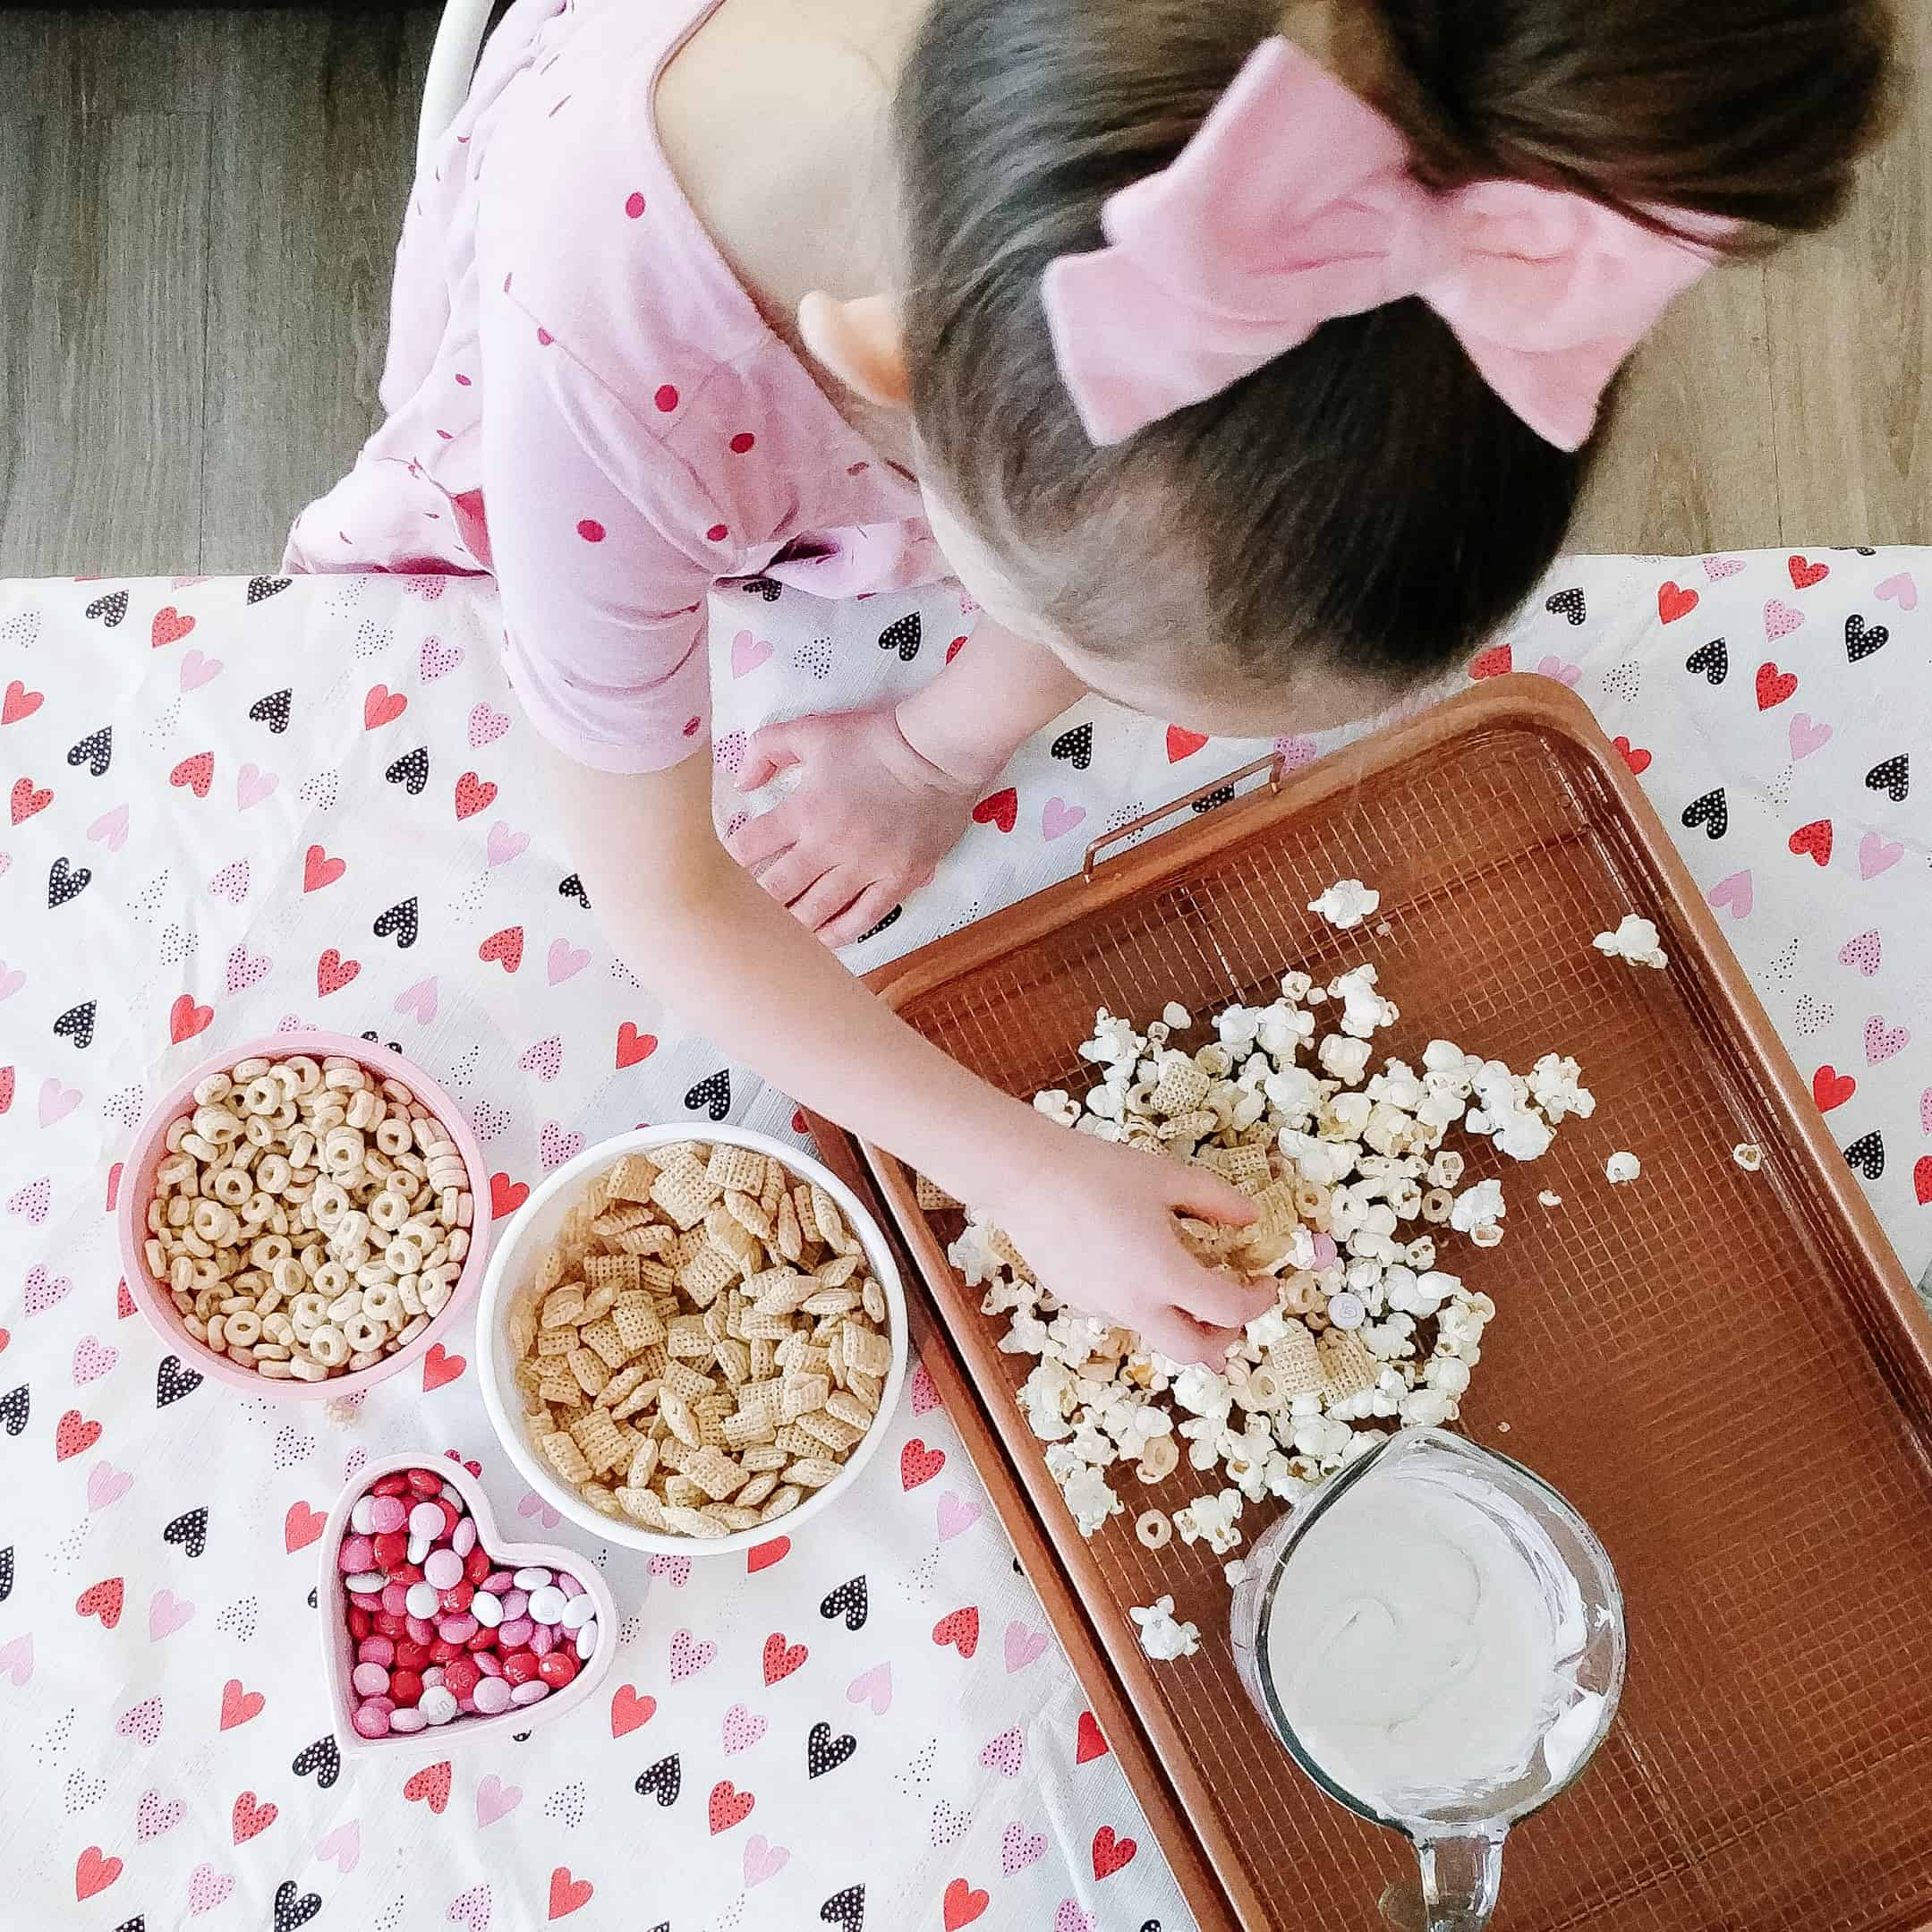 Toddler helping make valentine's day snack